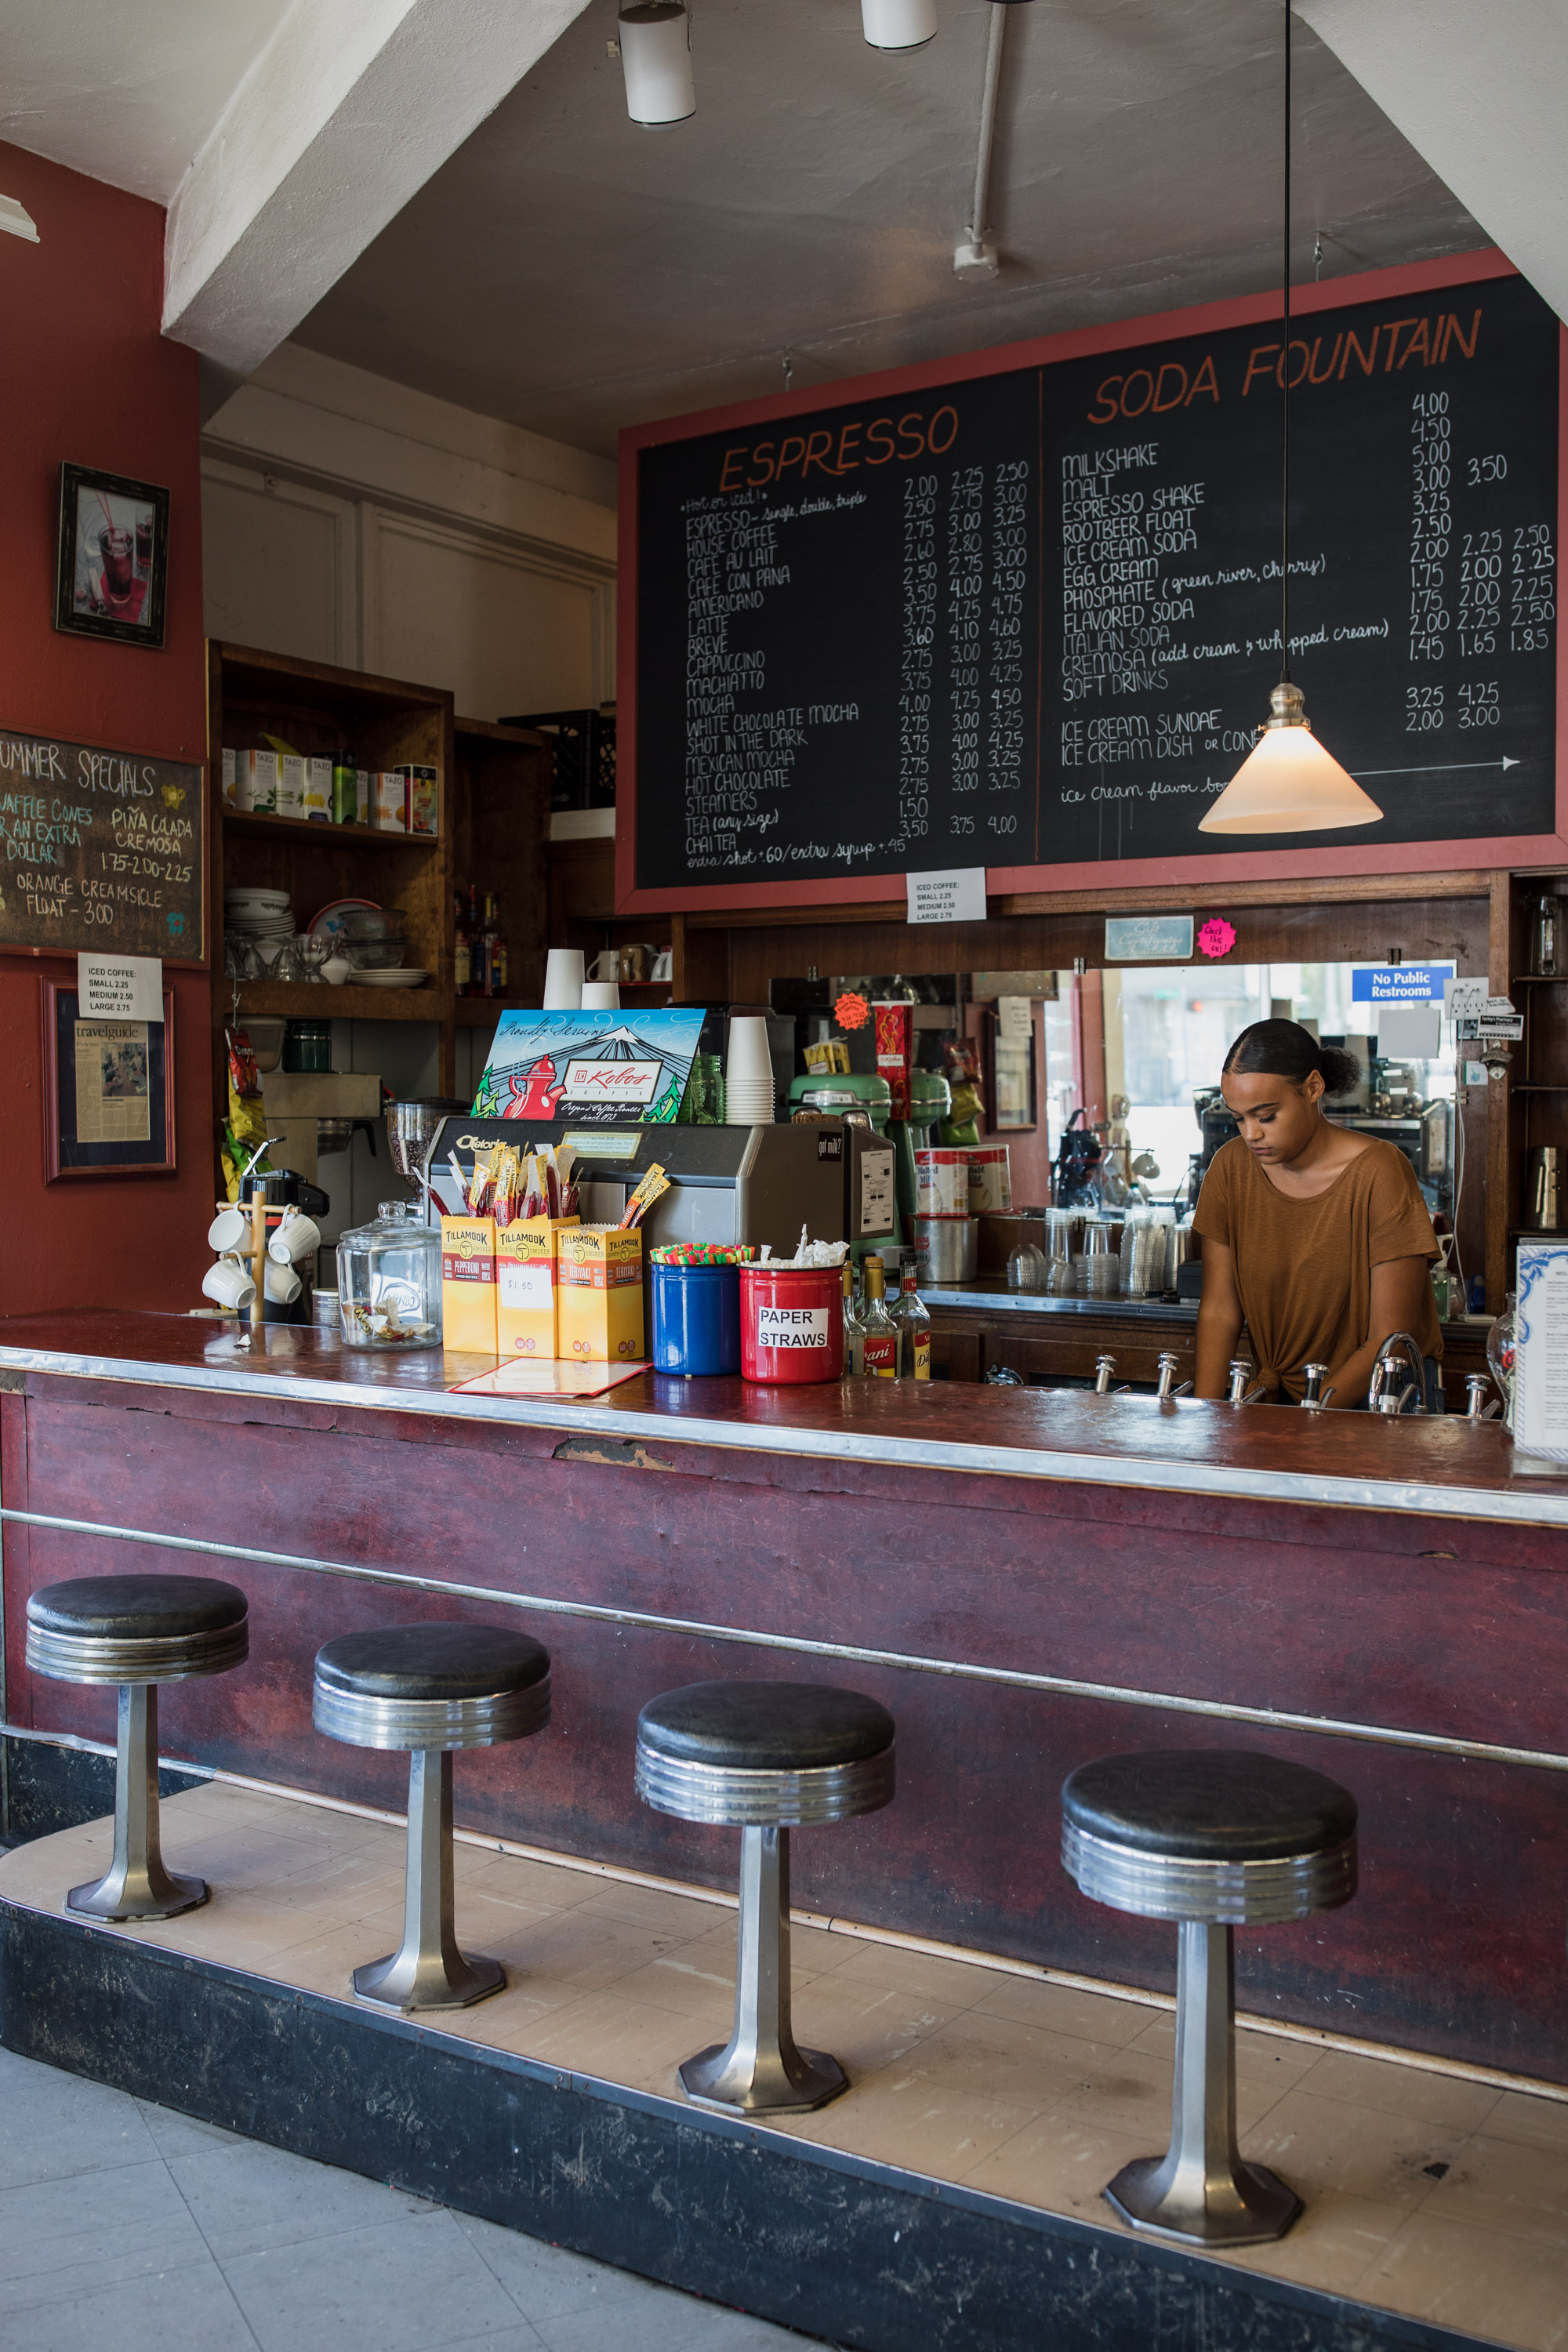 A woman works behind the counter of an old-fashioned soda fountain